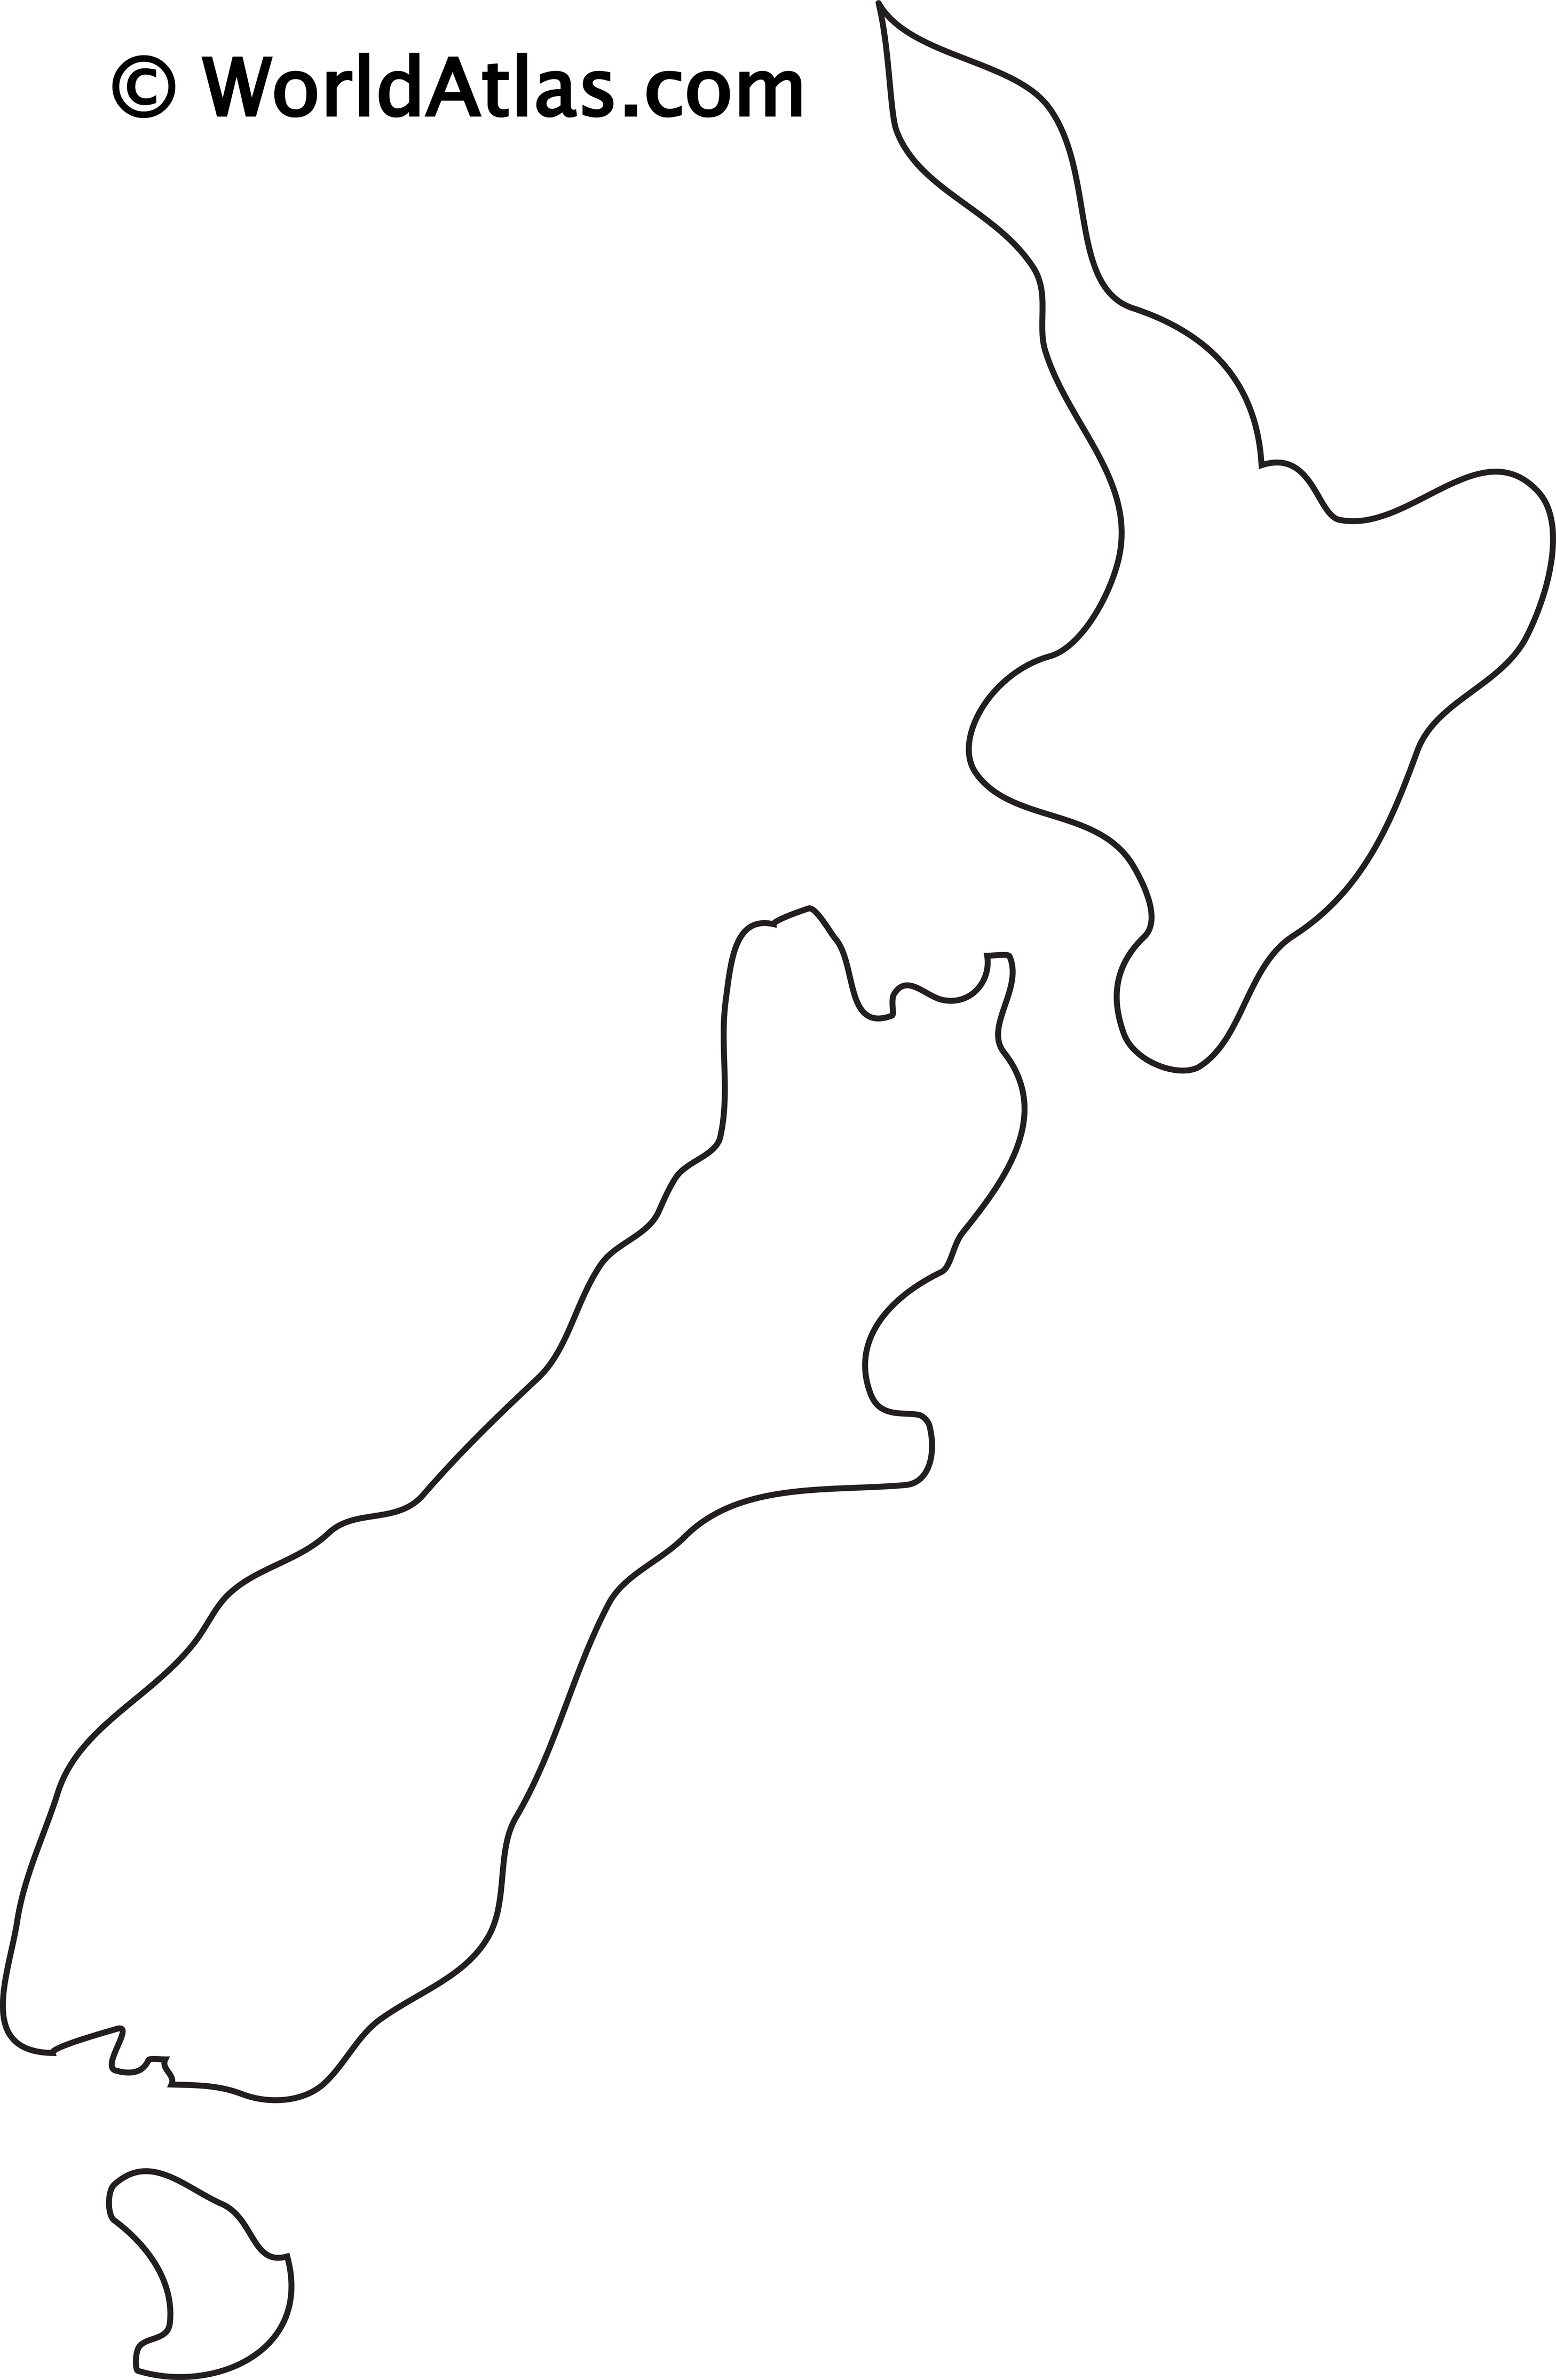 Blank Outline Map of New Zealand